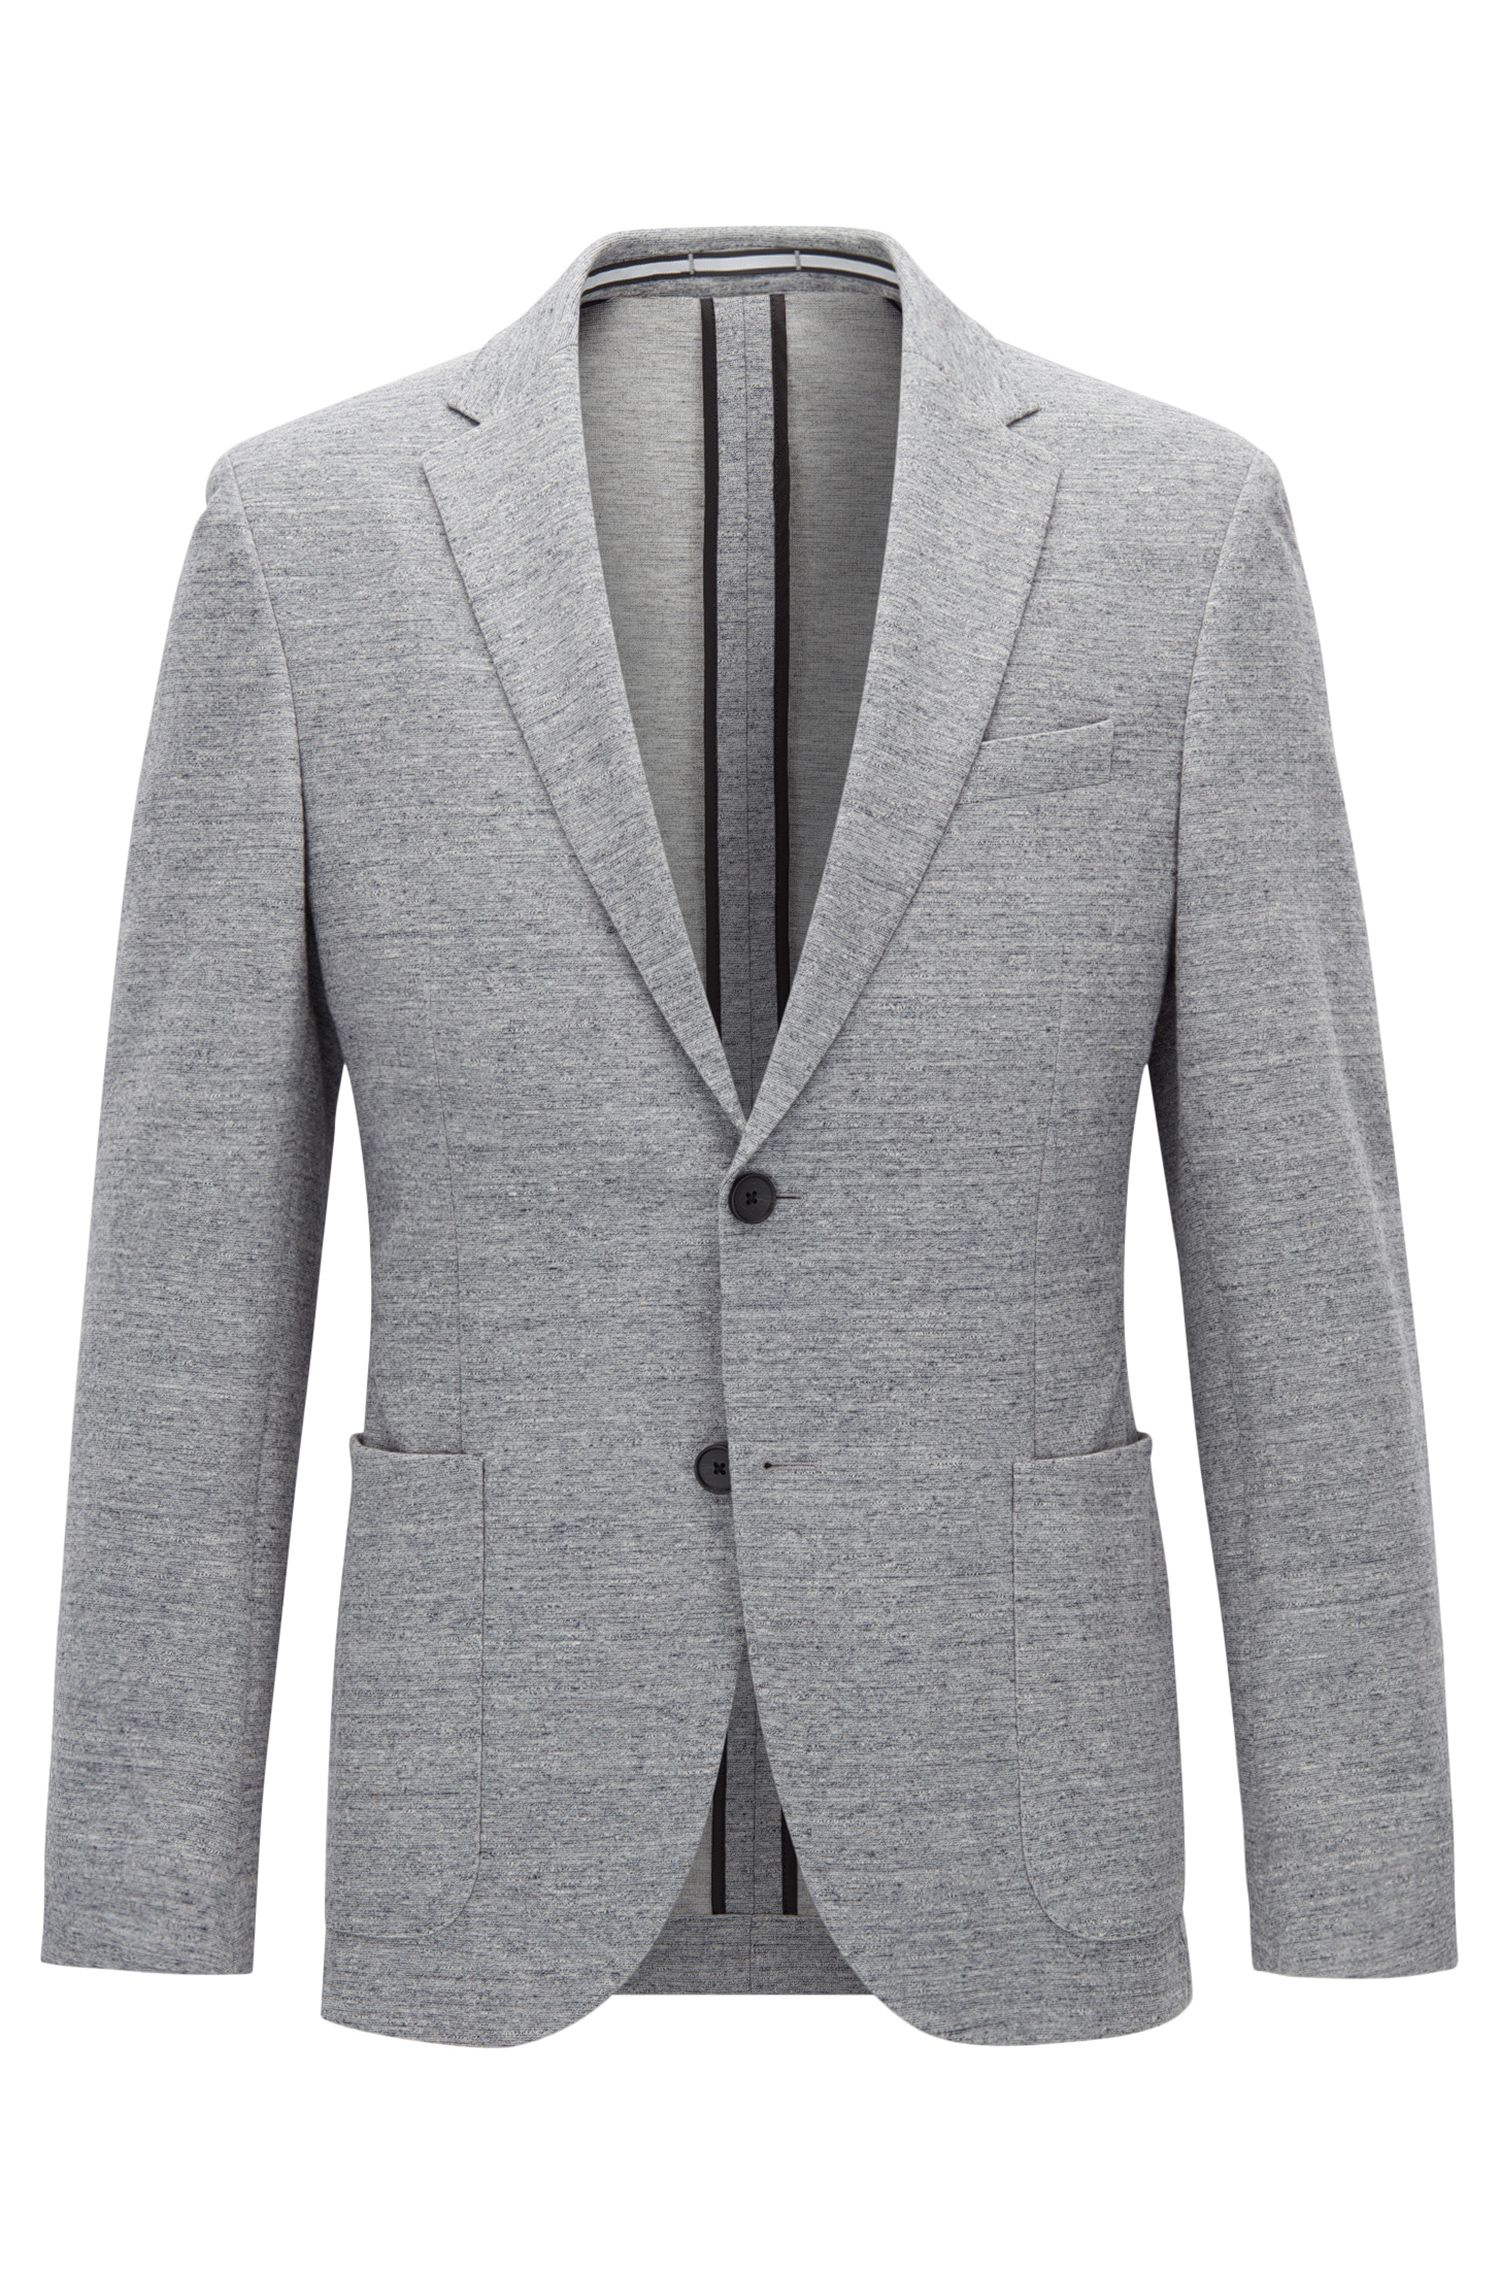 Jersey blend Tweed Sport Coat, Slim Fit | Newon J